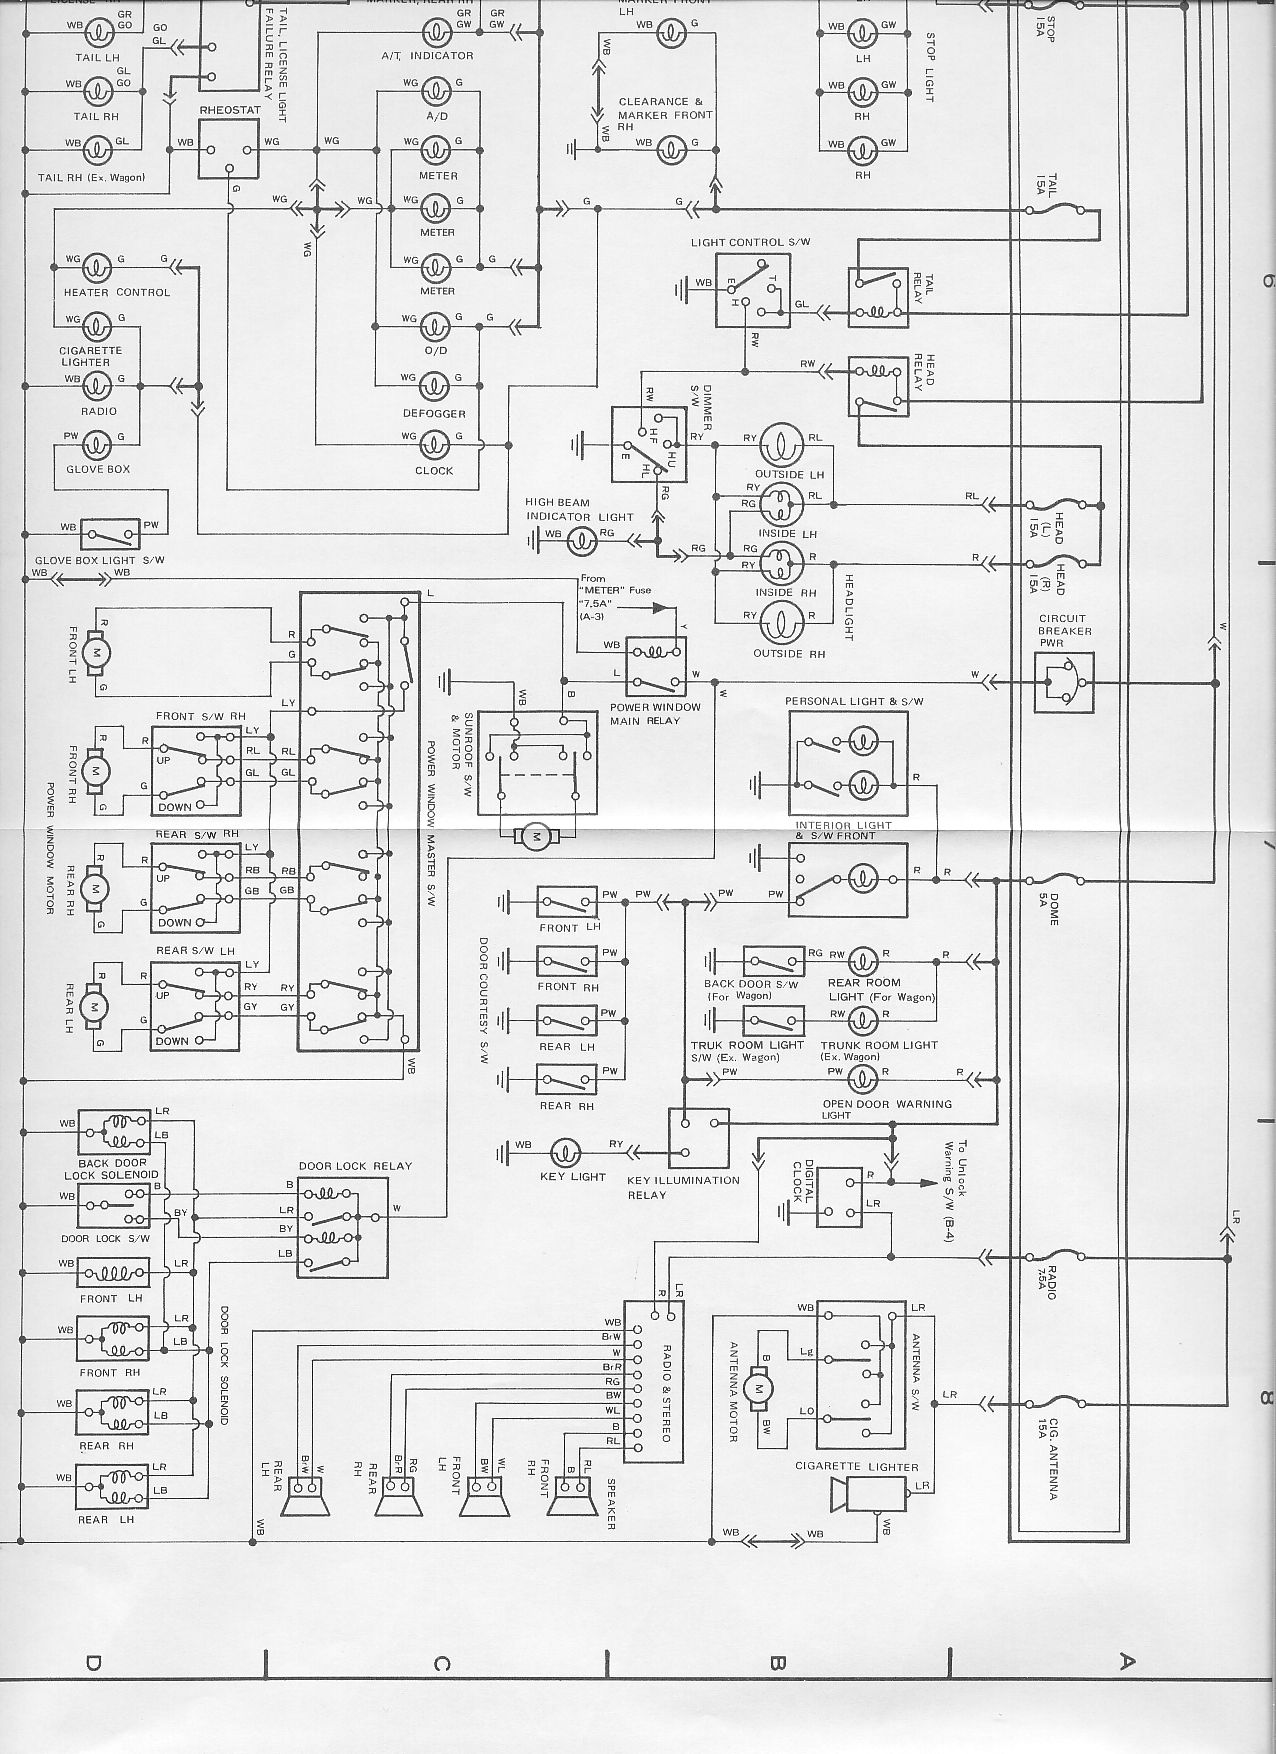 Celica Wiring Diagram